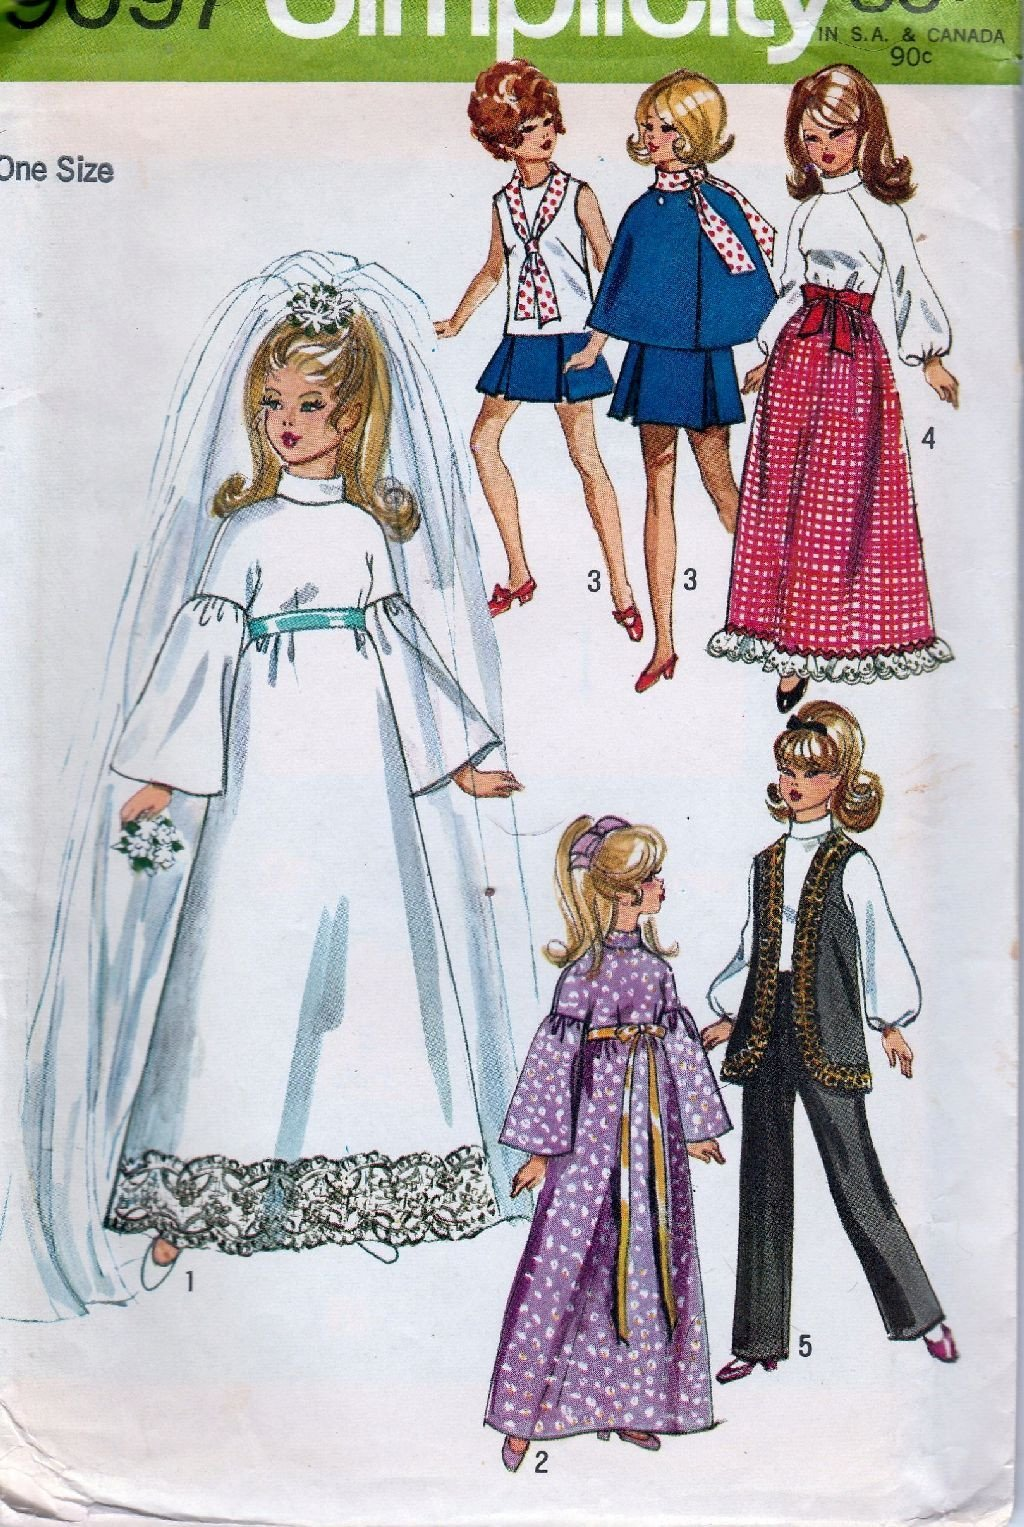 Simplicity 9097 Vintage 1970's Craft Sewing Pattern Barbie Doll Clothing - VintageStitching - Vintage Sewing Patterns